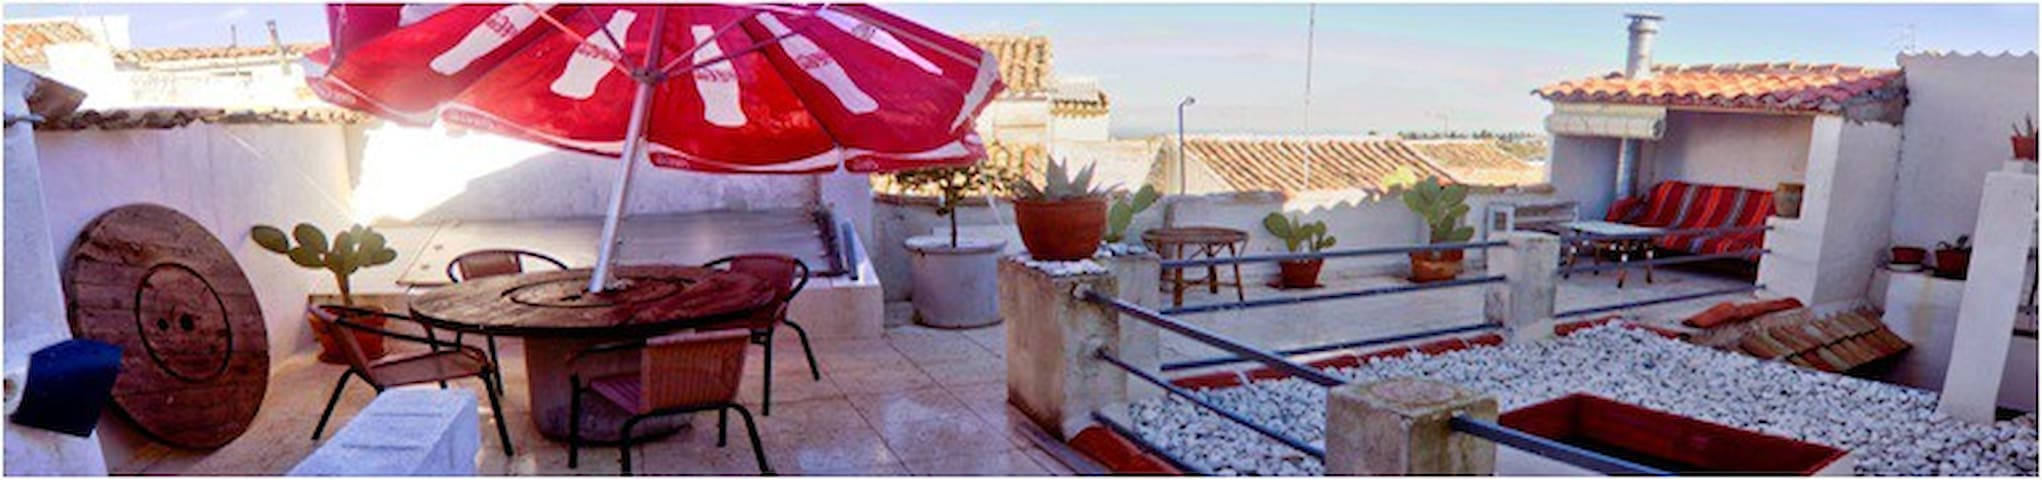 Andulucia apartment with terrace - Martos